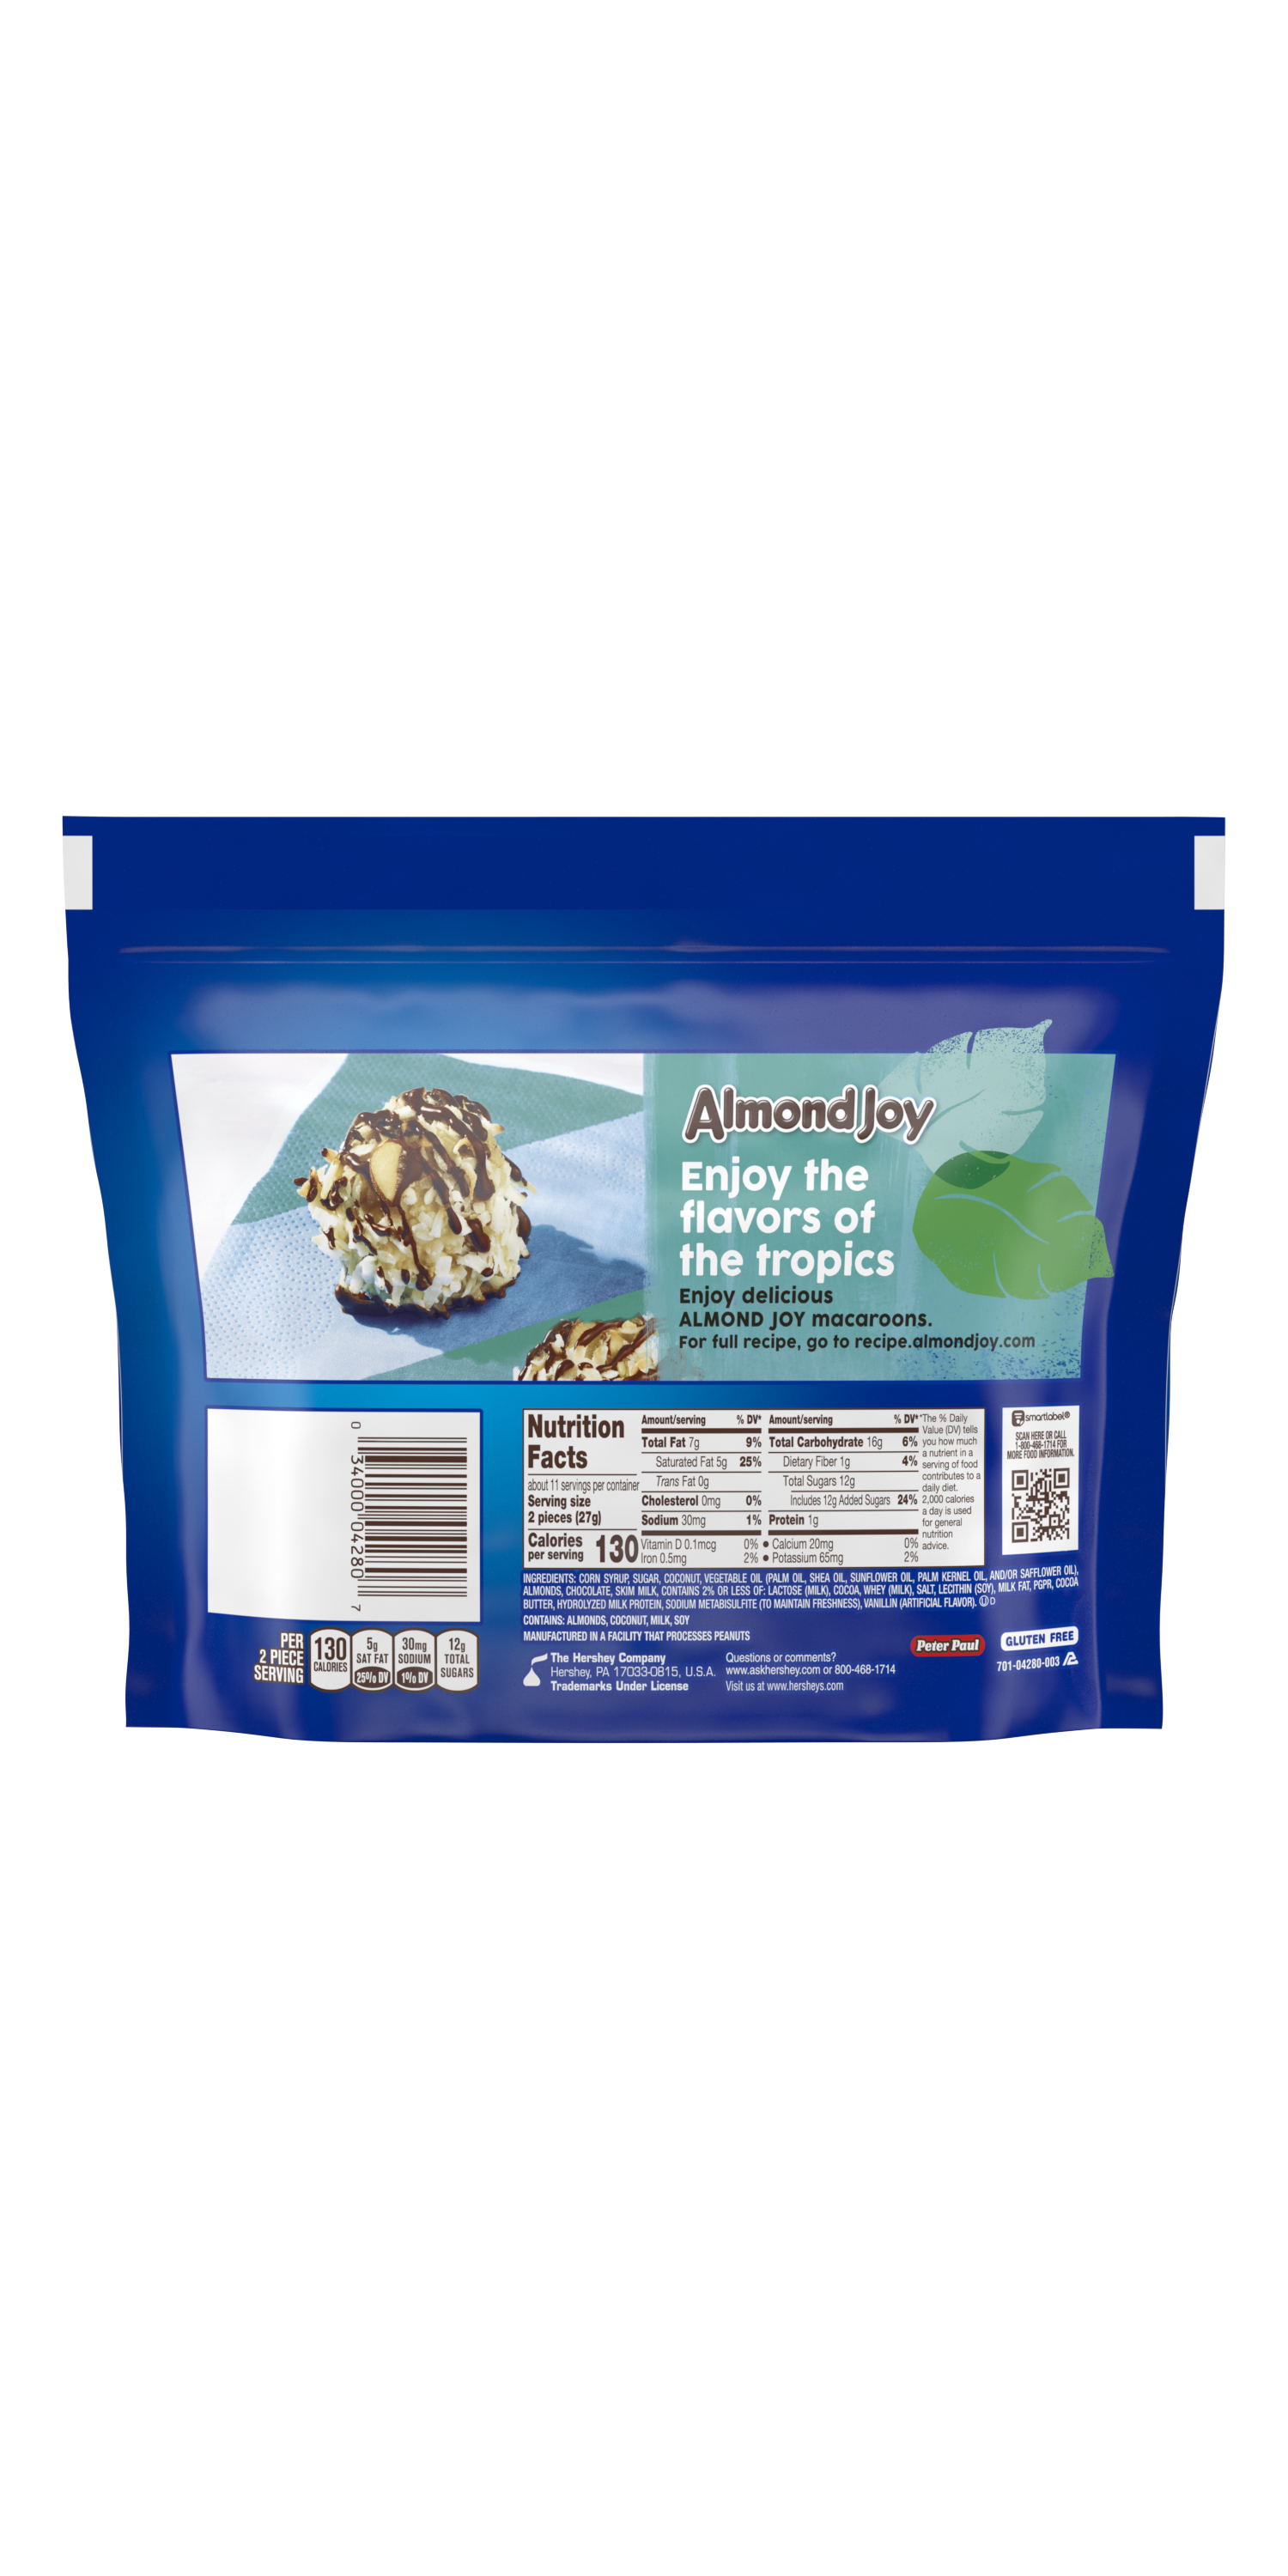 ALMOND JOY Miniatures Coconut and Almond Chocolate Candy Bars, 10.2 oz pack - Back of Package